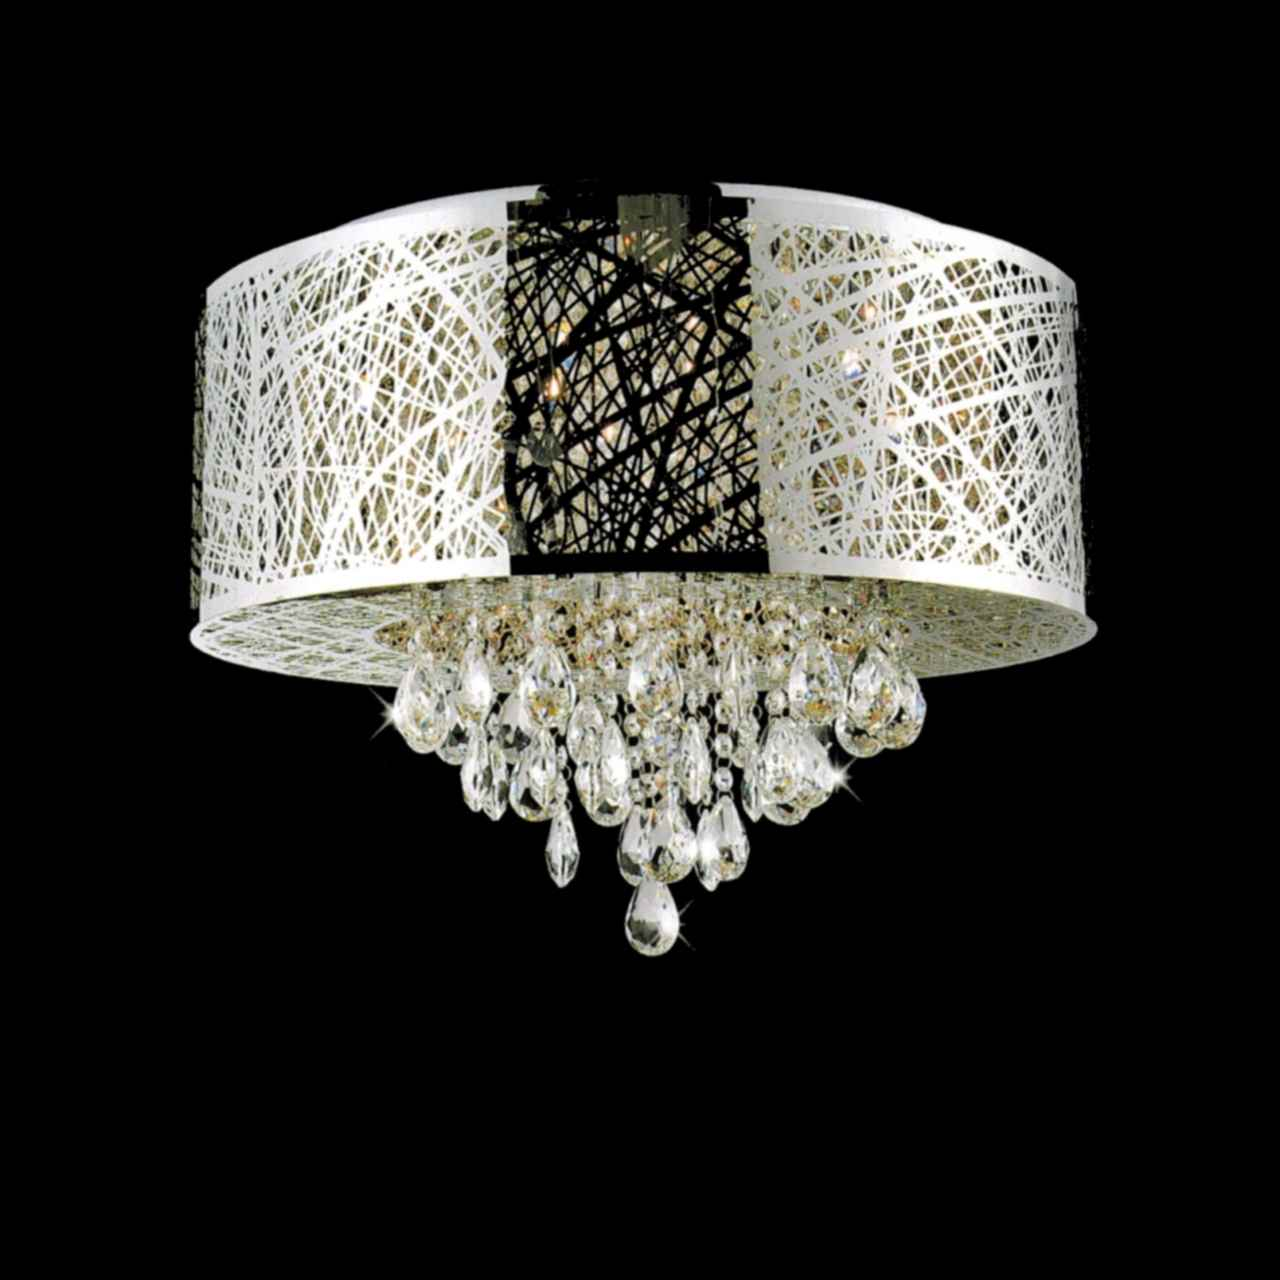 drum shade crystal round flush mount chandelier stainless steel 9